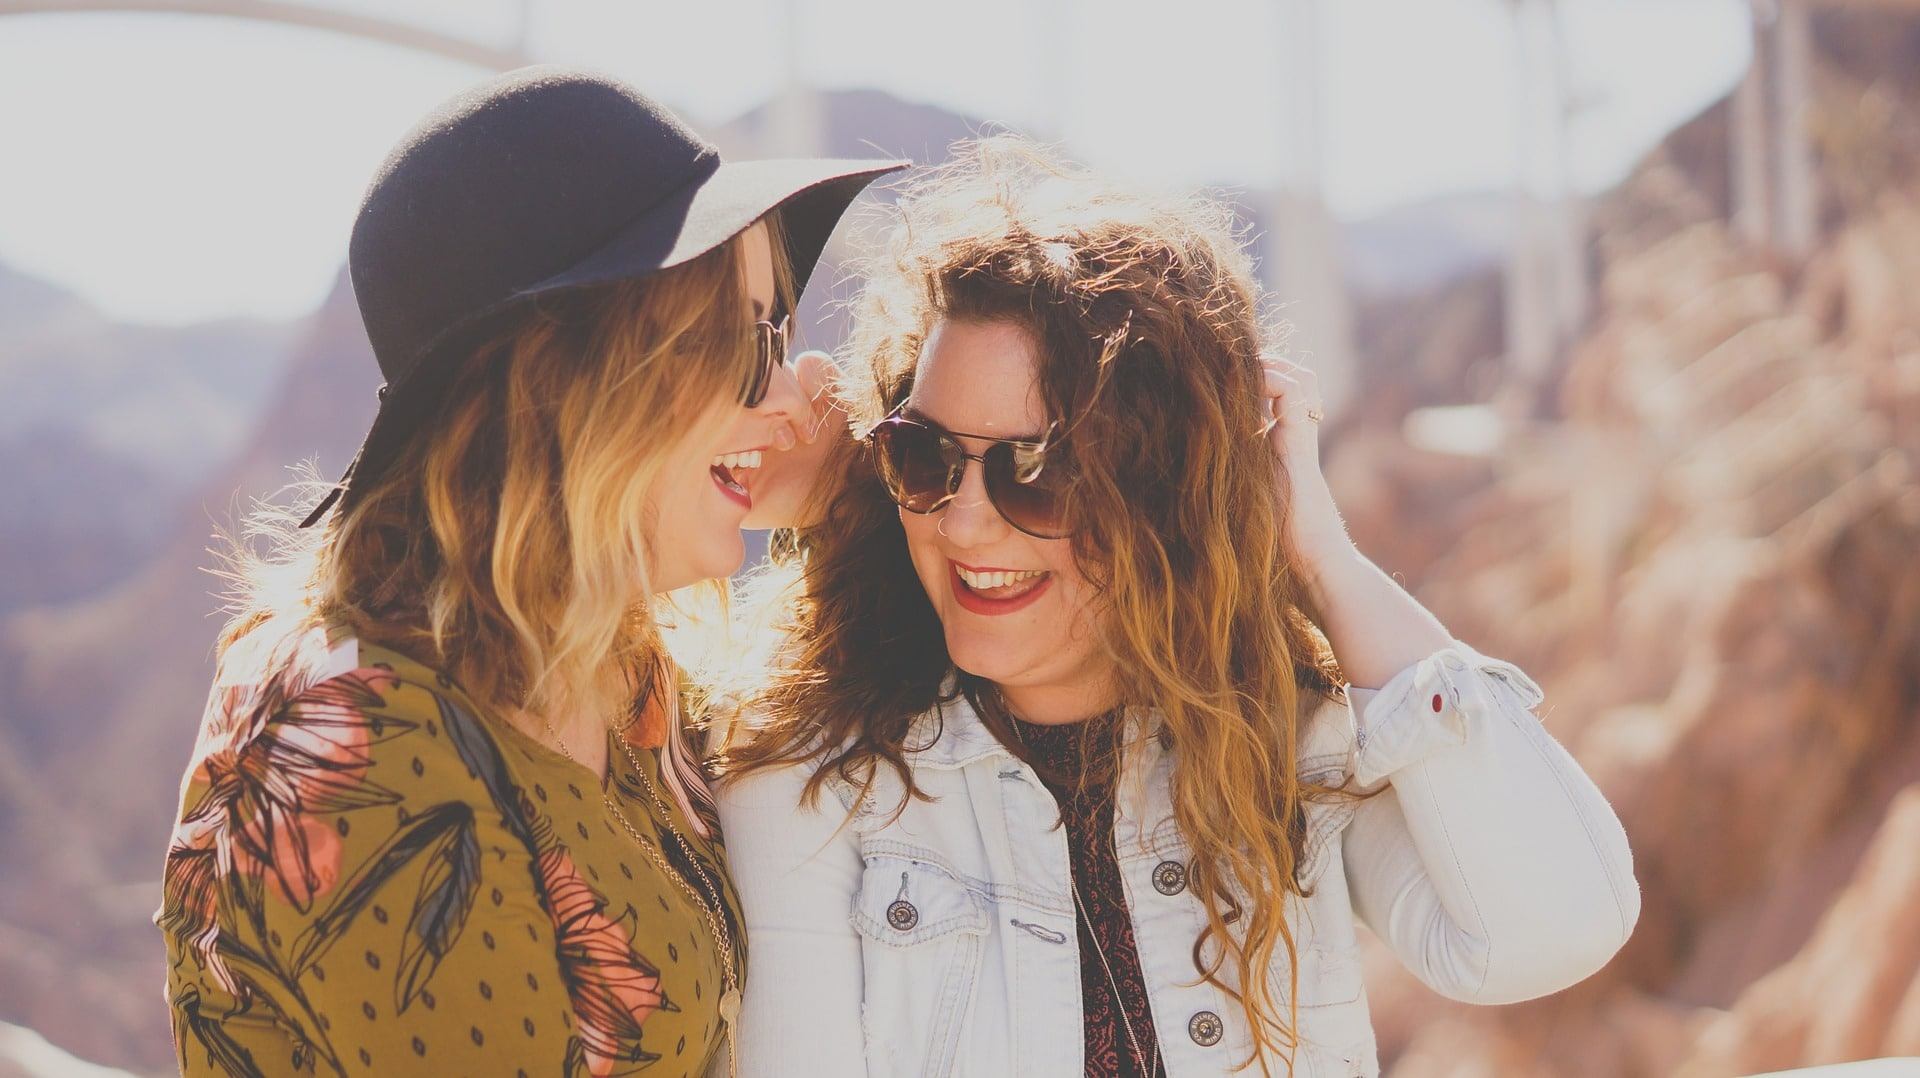 Record number of single women and same-sex couples using